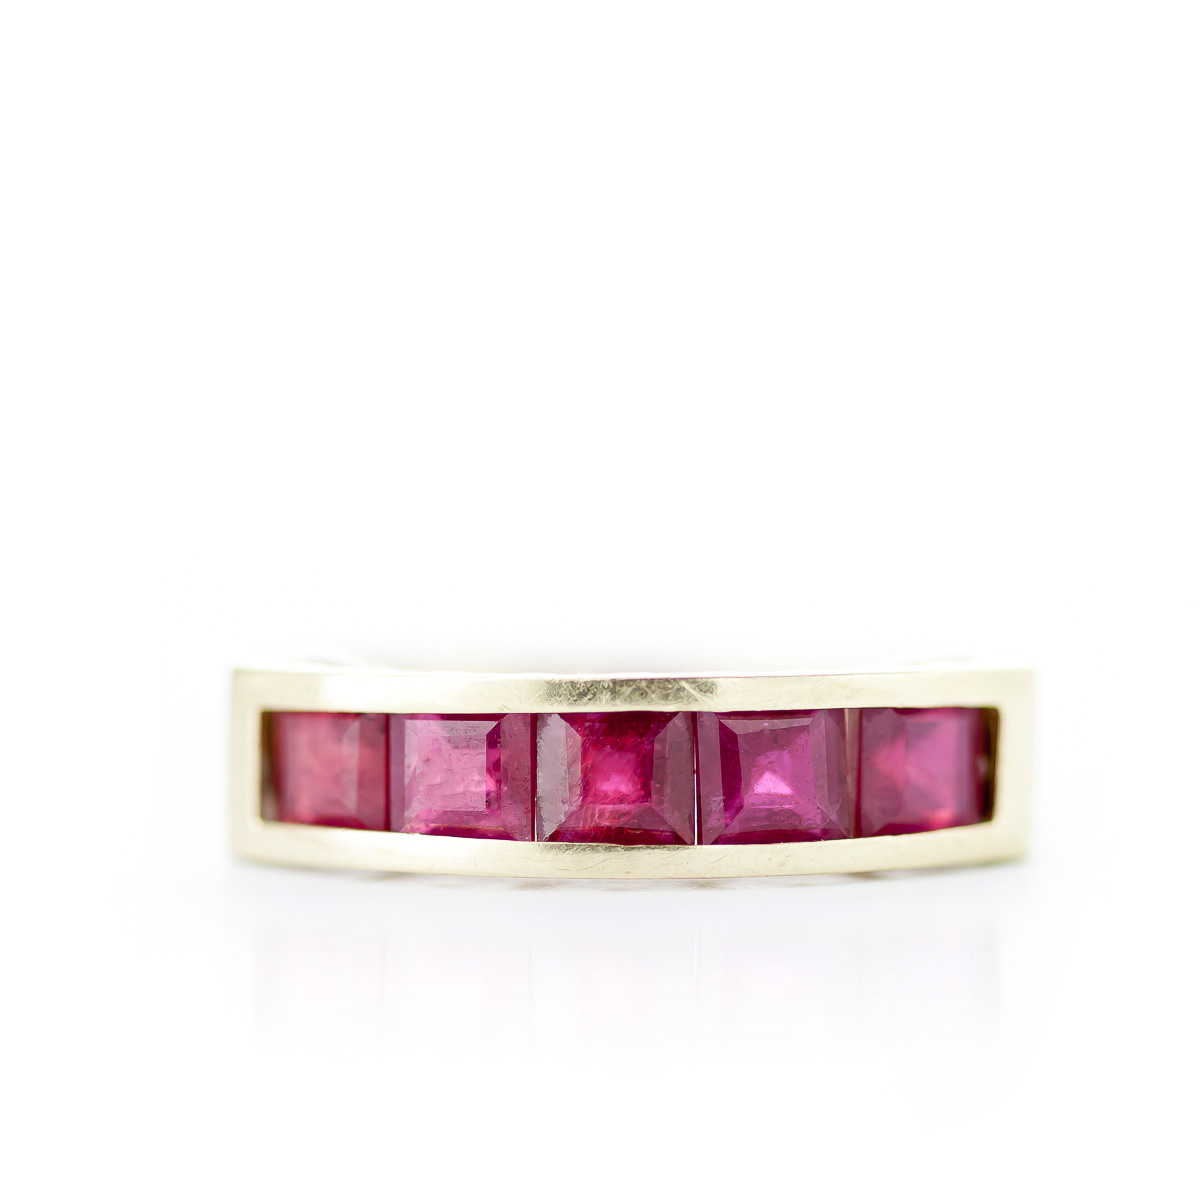 Square Cut Ruby Ring 2.5ctw in 14K Gold